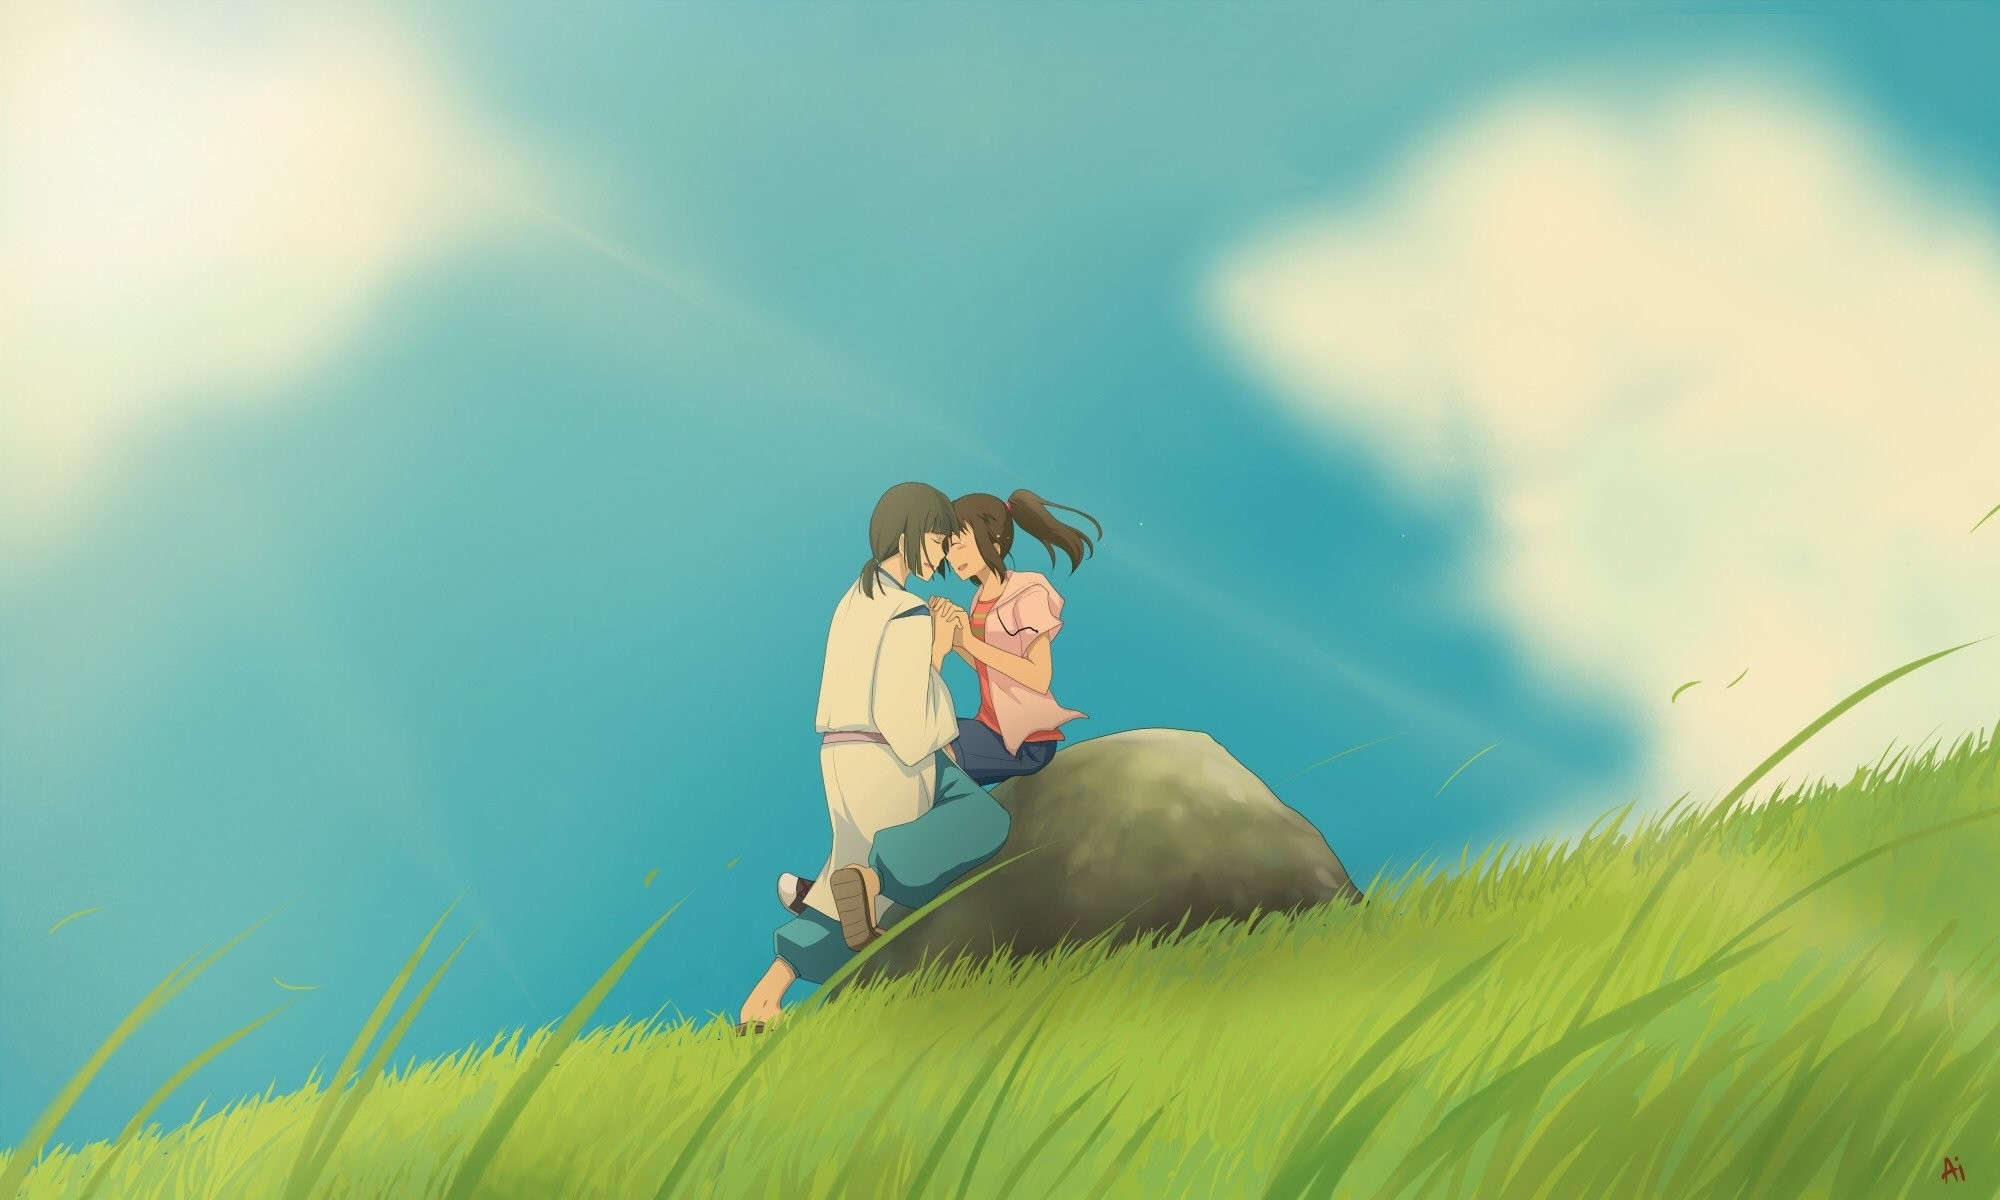 165 Spirited Away Android Iphone Desktop Hd Backgrounds Wallpapers 1080p 4k 2000x1200 2020